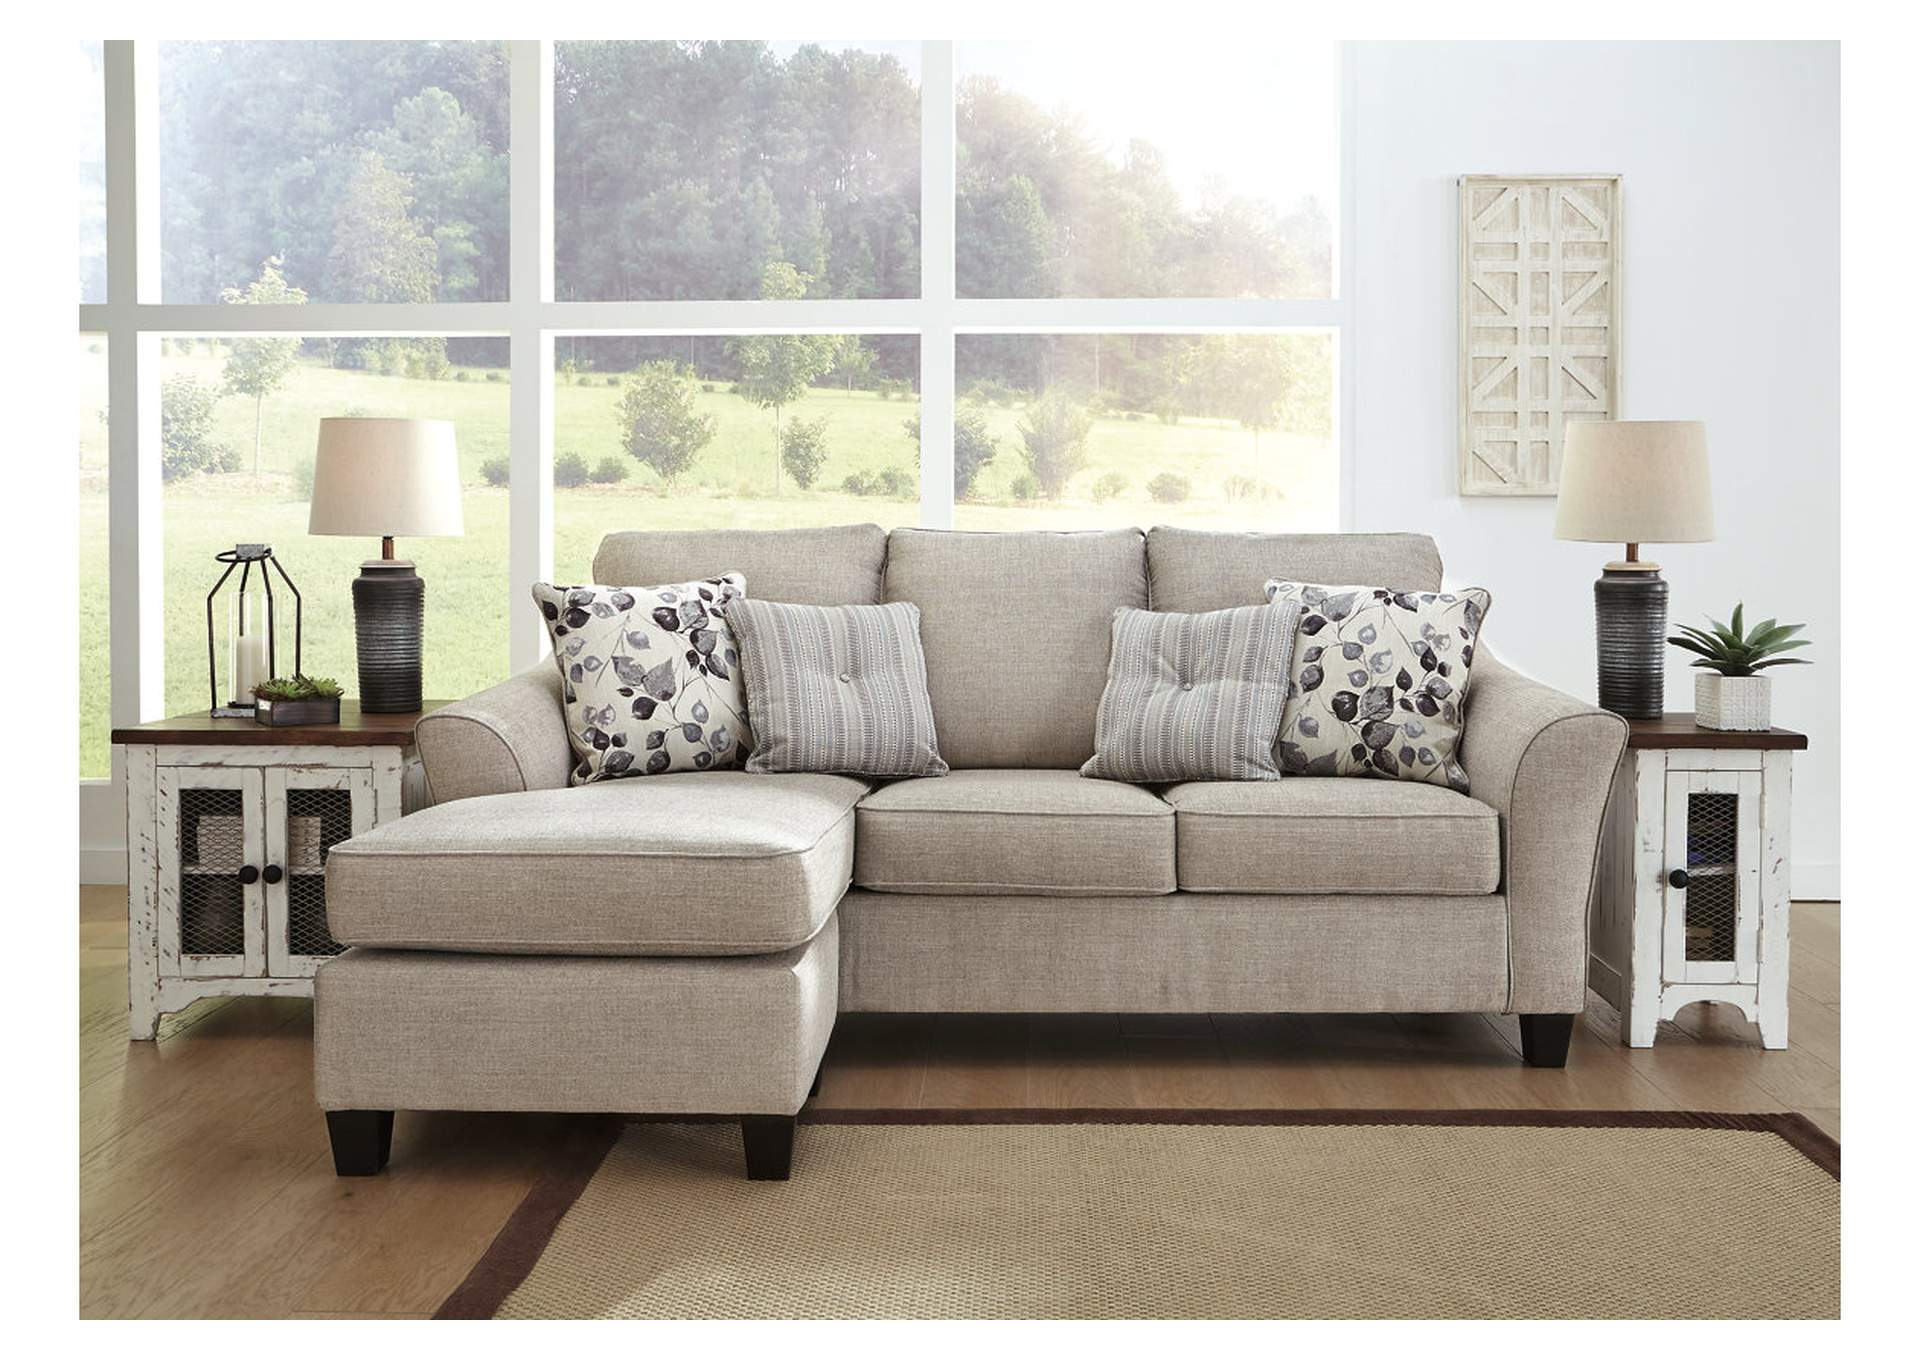 Abney Gray Sofa Chaise Sleeper,Benchcraft